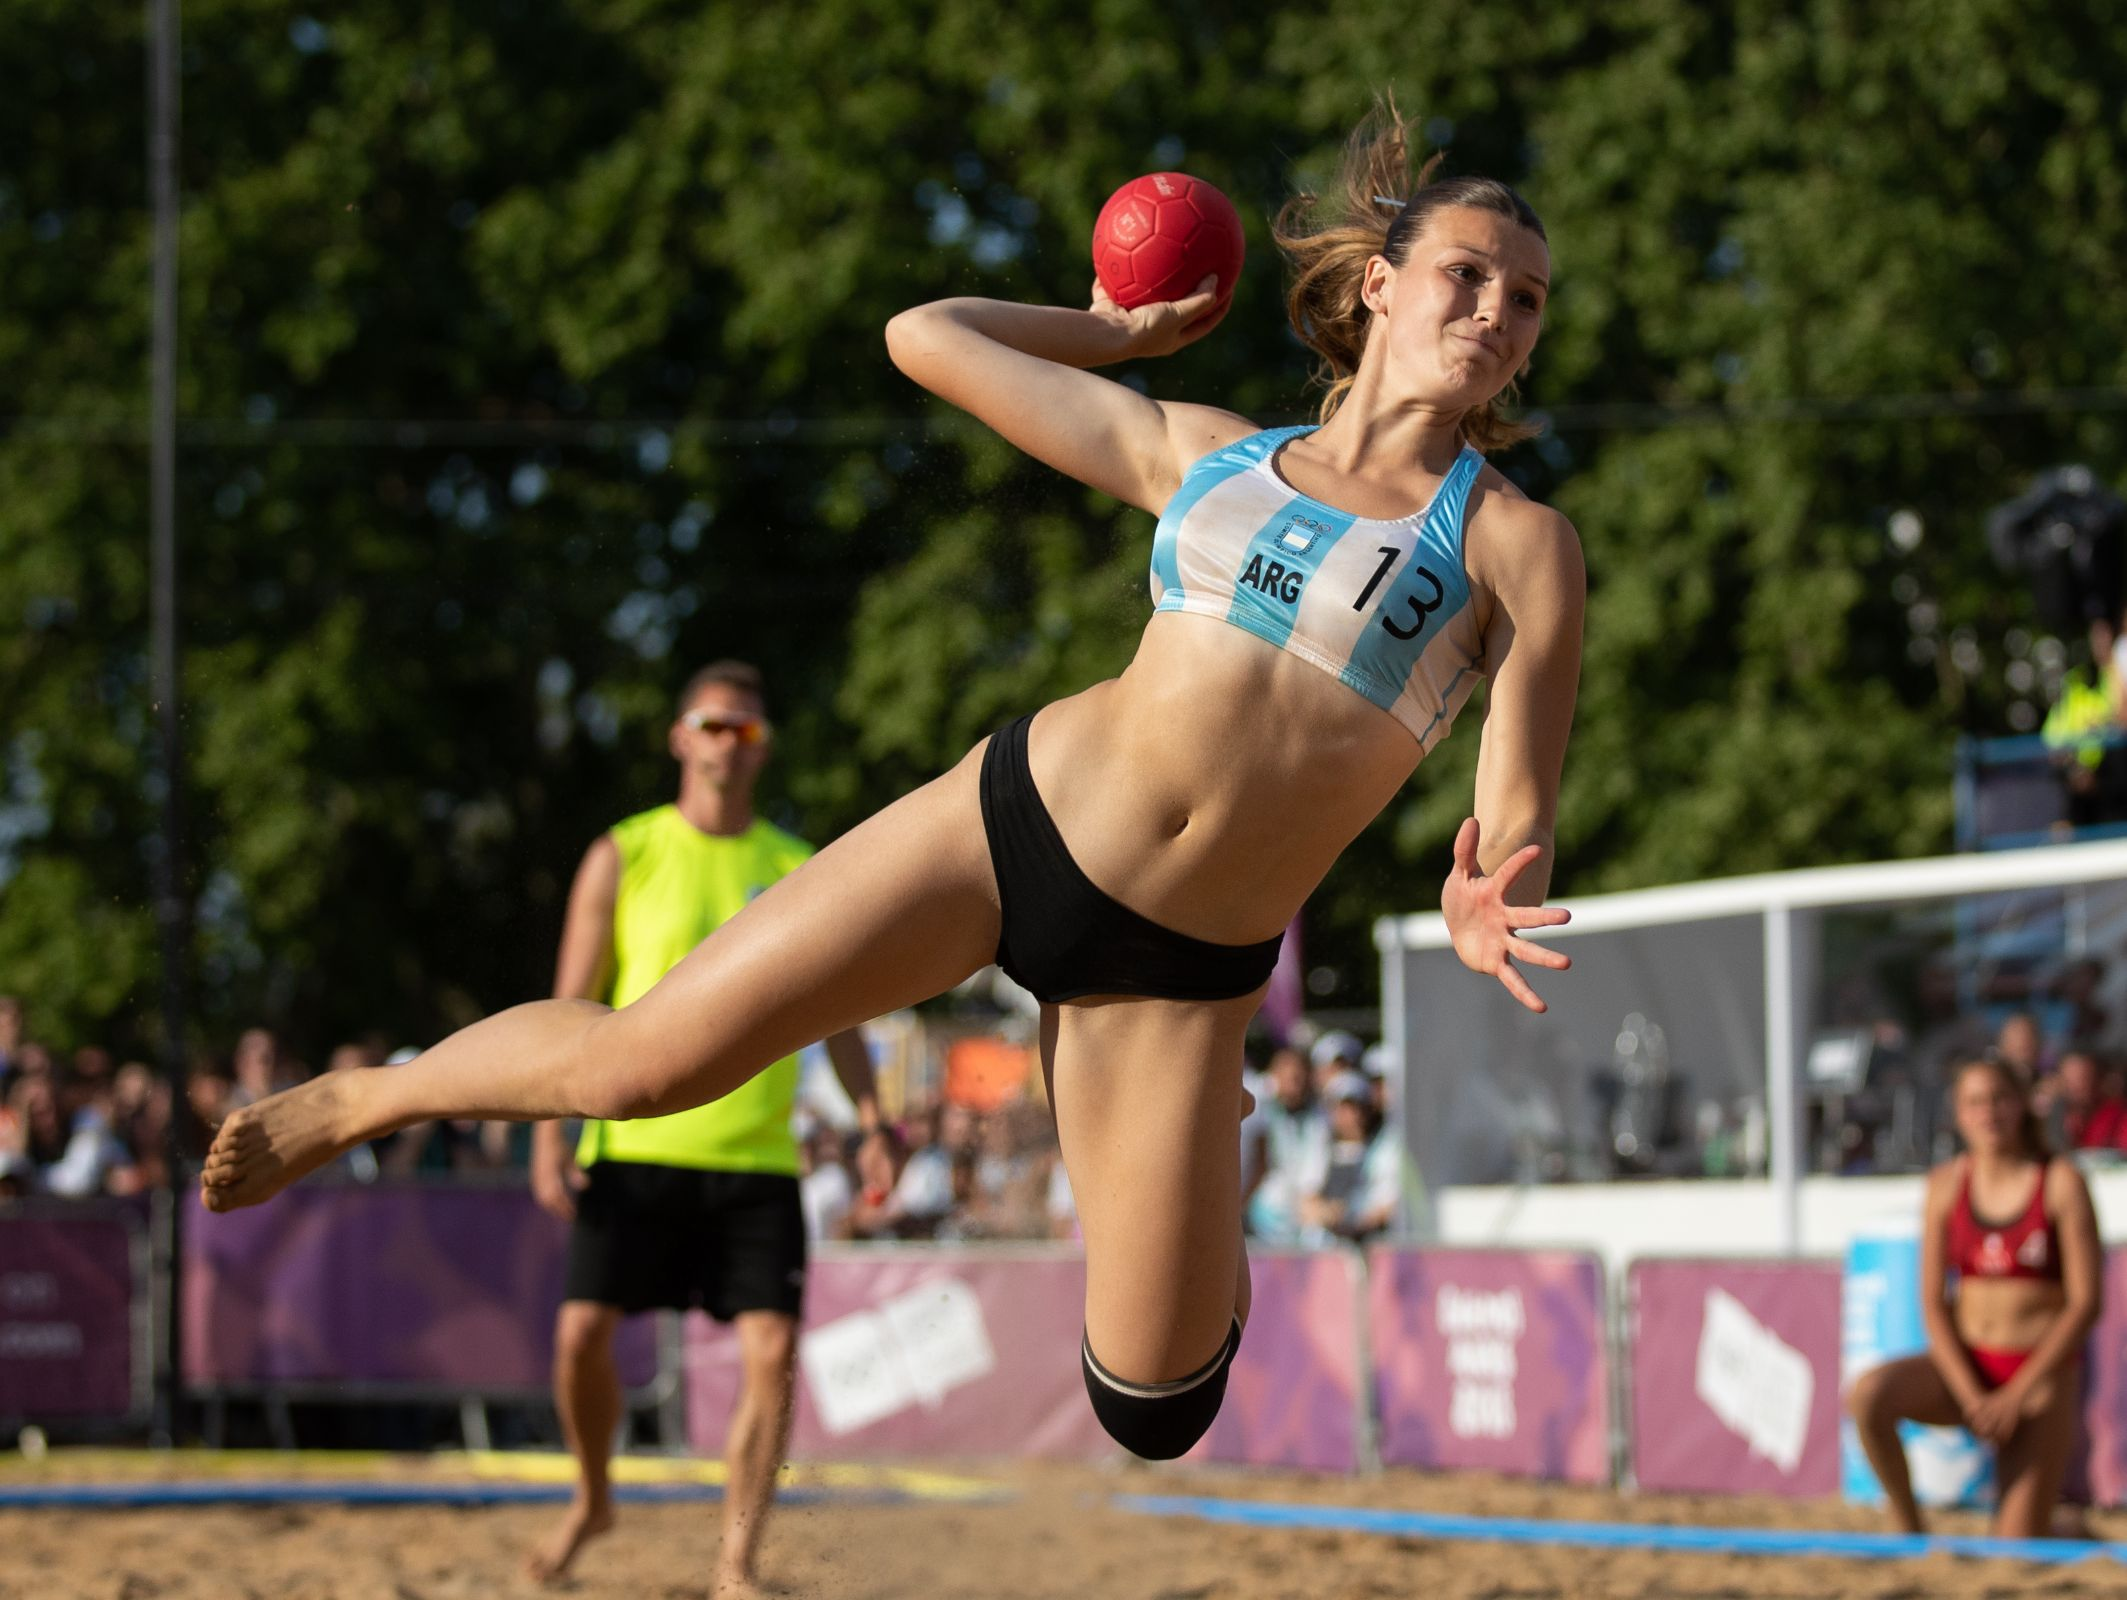 Buenos Aires 2018 - Beach Handball - Women's Tournament